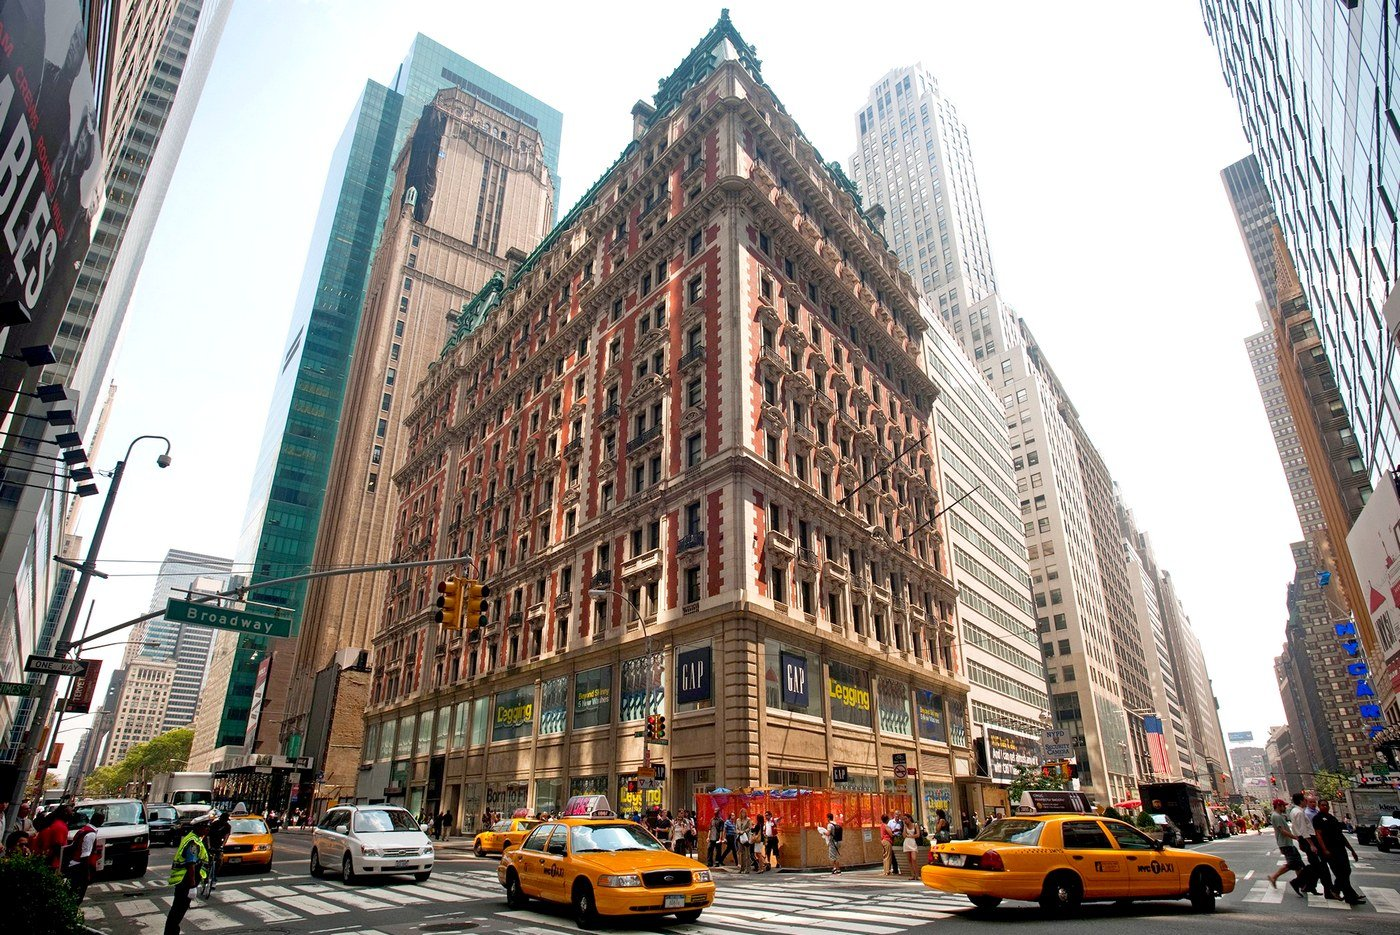 Hotels New York Hotel Deals Today